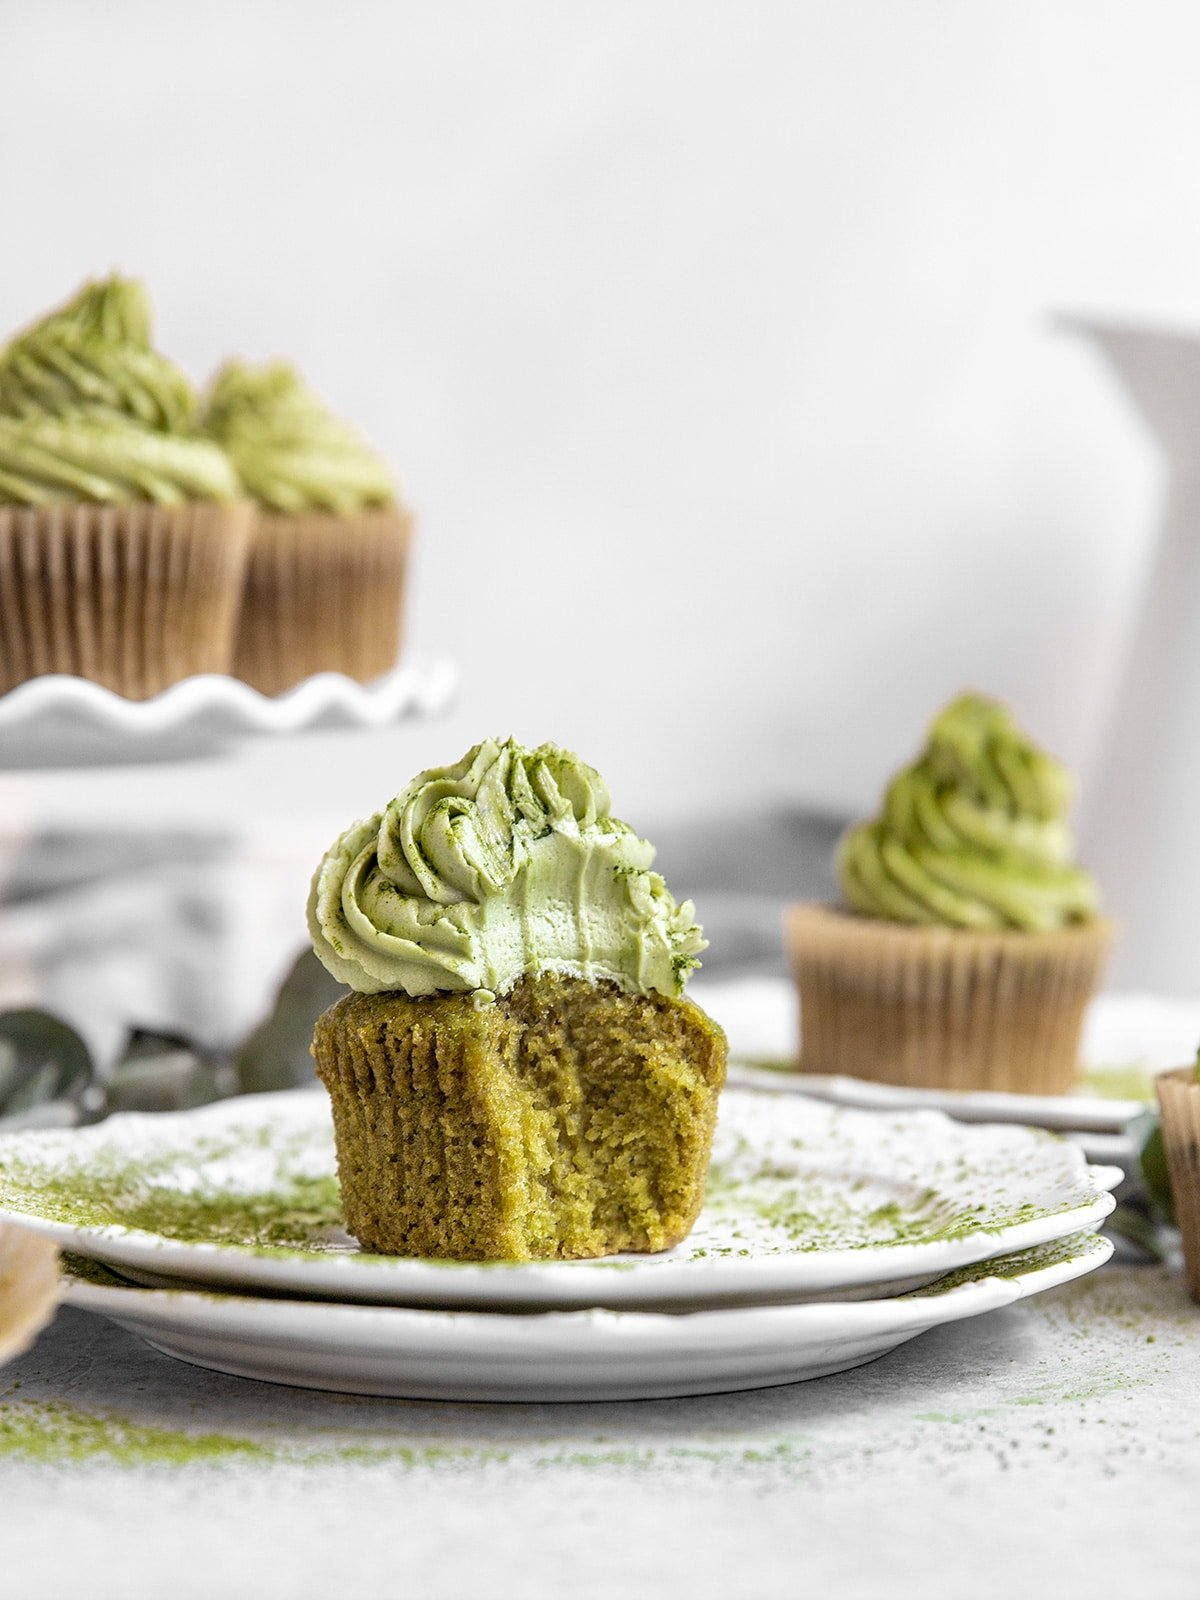 green matcha cupcake with a bite taken out to show texture